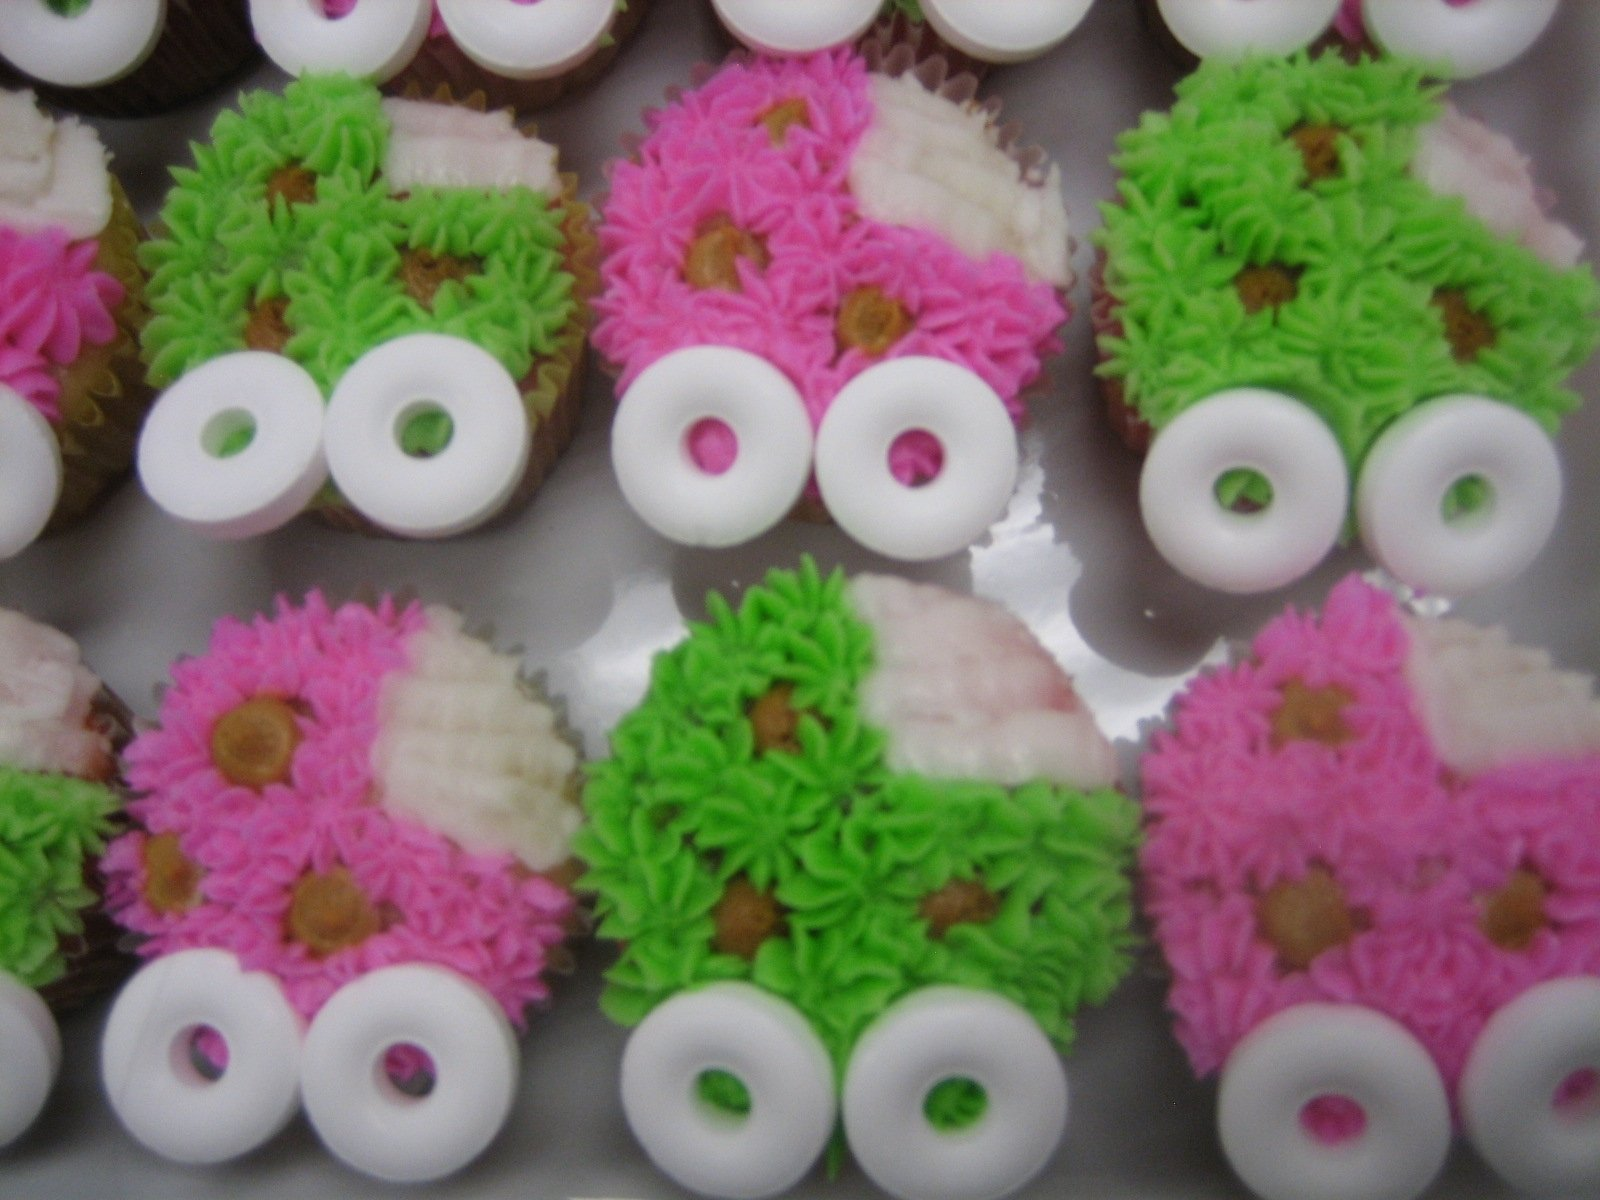 10 Famous Pink And Green Baby Shower Ideas photo ladybug baby shower centerpieces image 2020